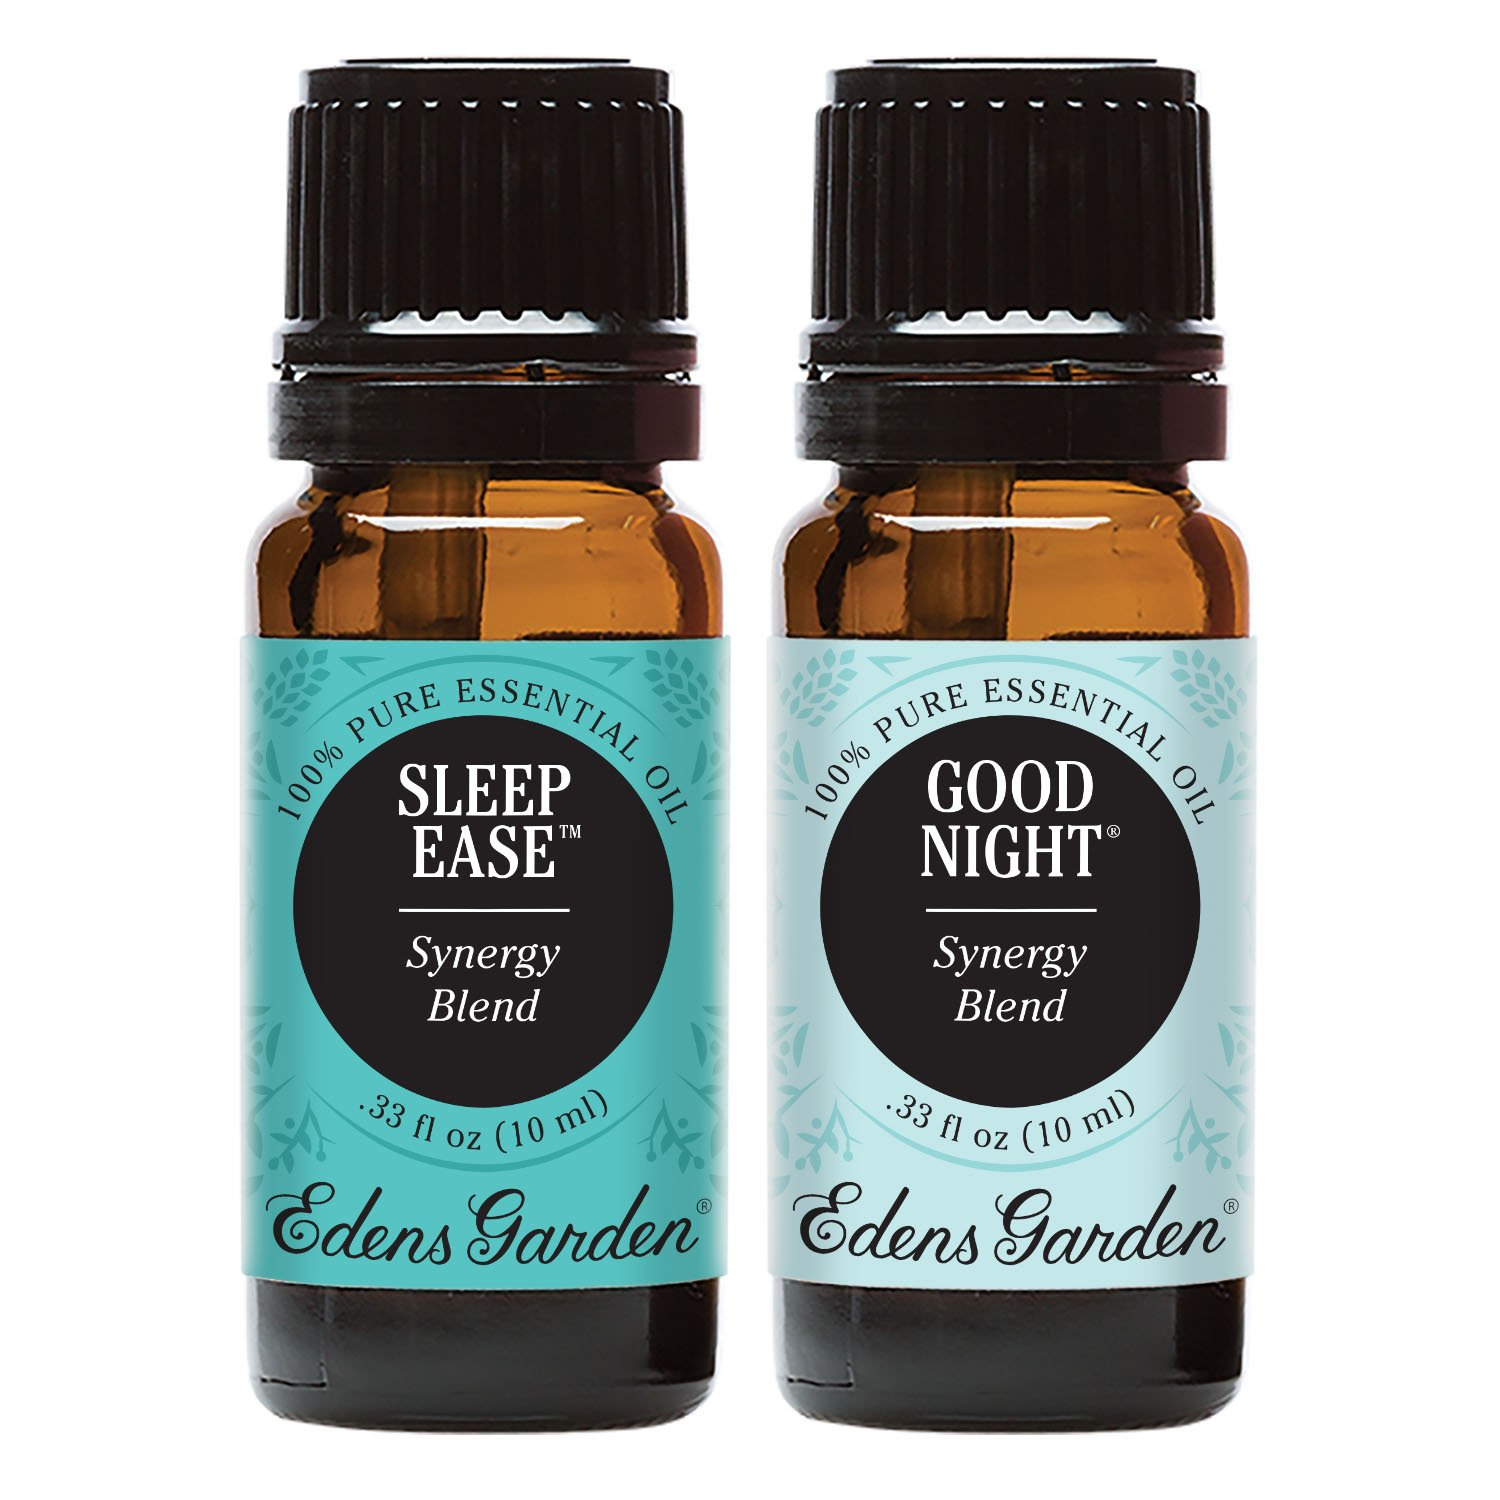 Edens Garden Good Night & Sleep Ease Essential Oil Synergy Blend, 100% Pure Therapeutic Grade (Highest Quality Aromatherapy Oils), 10 ml Value Pack by Edens Garden